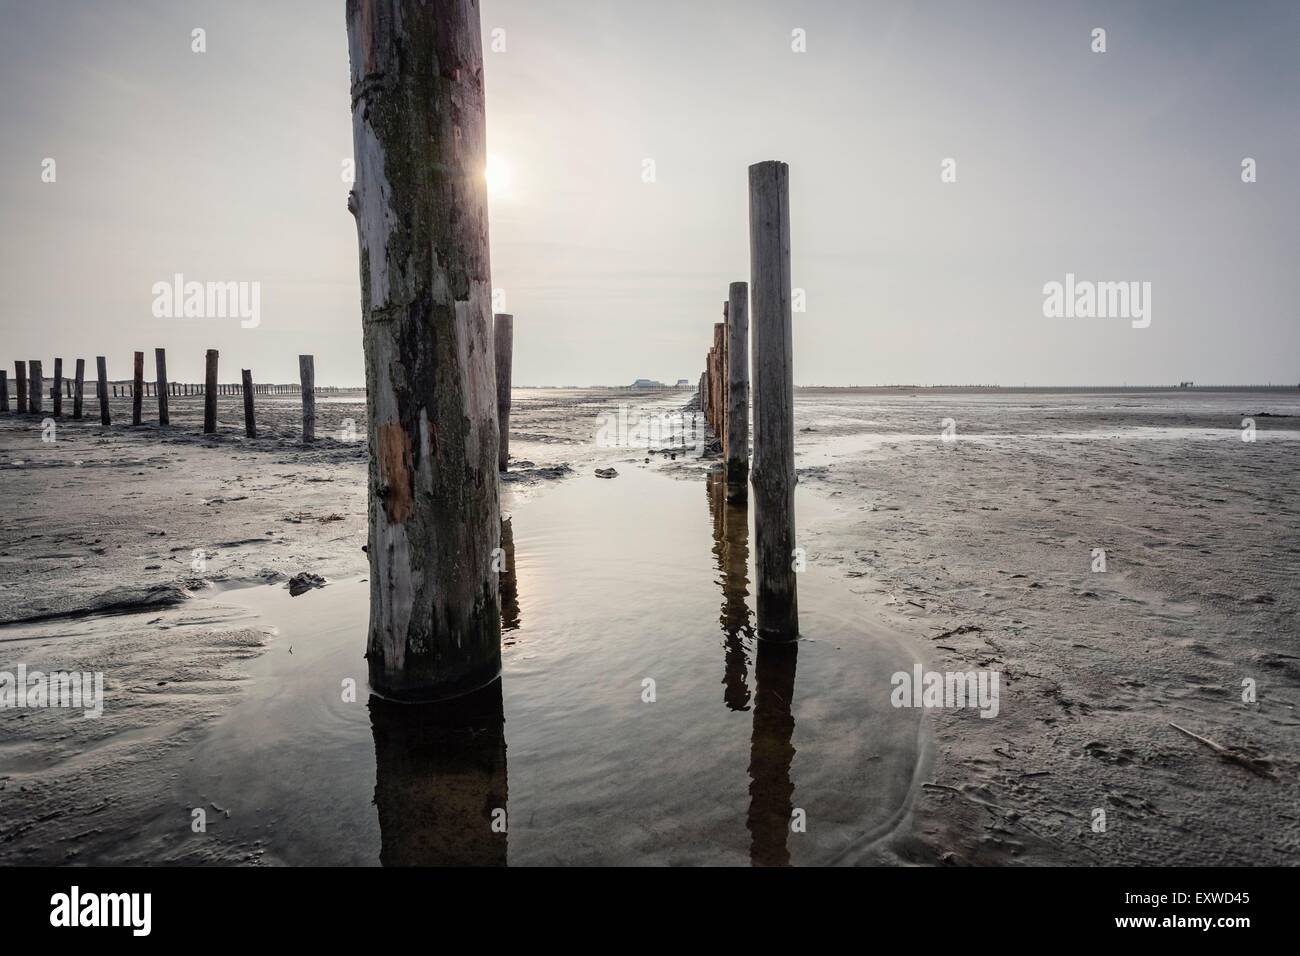 Wooden posts on the beach of Sankt Peter-Ording, Schleswig-Holstein, Germany - Stock Image